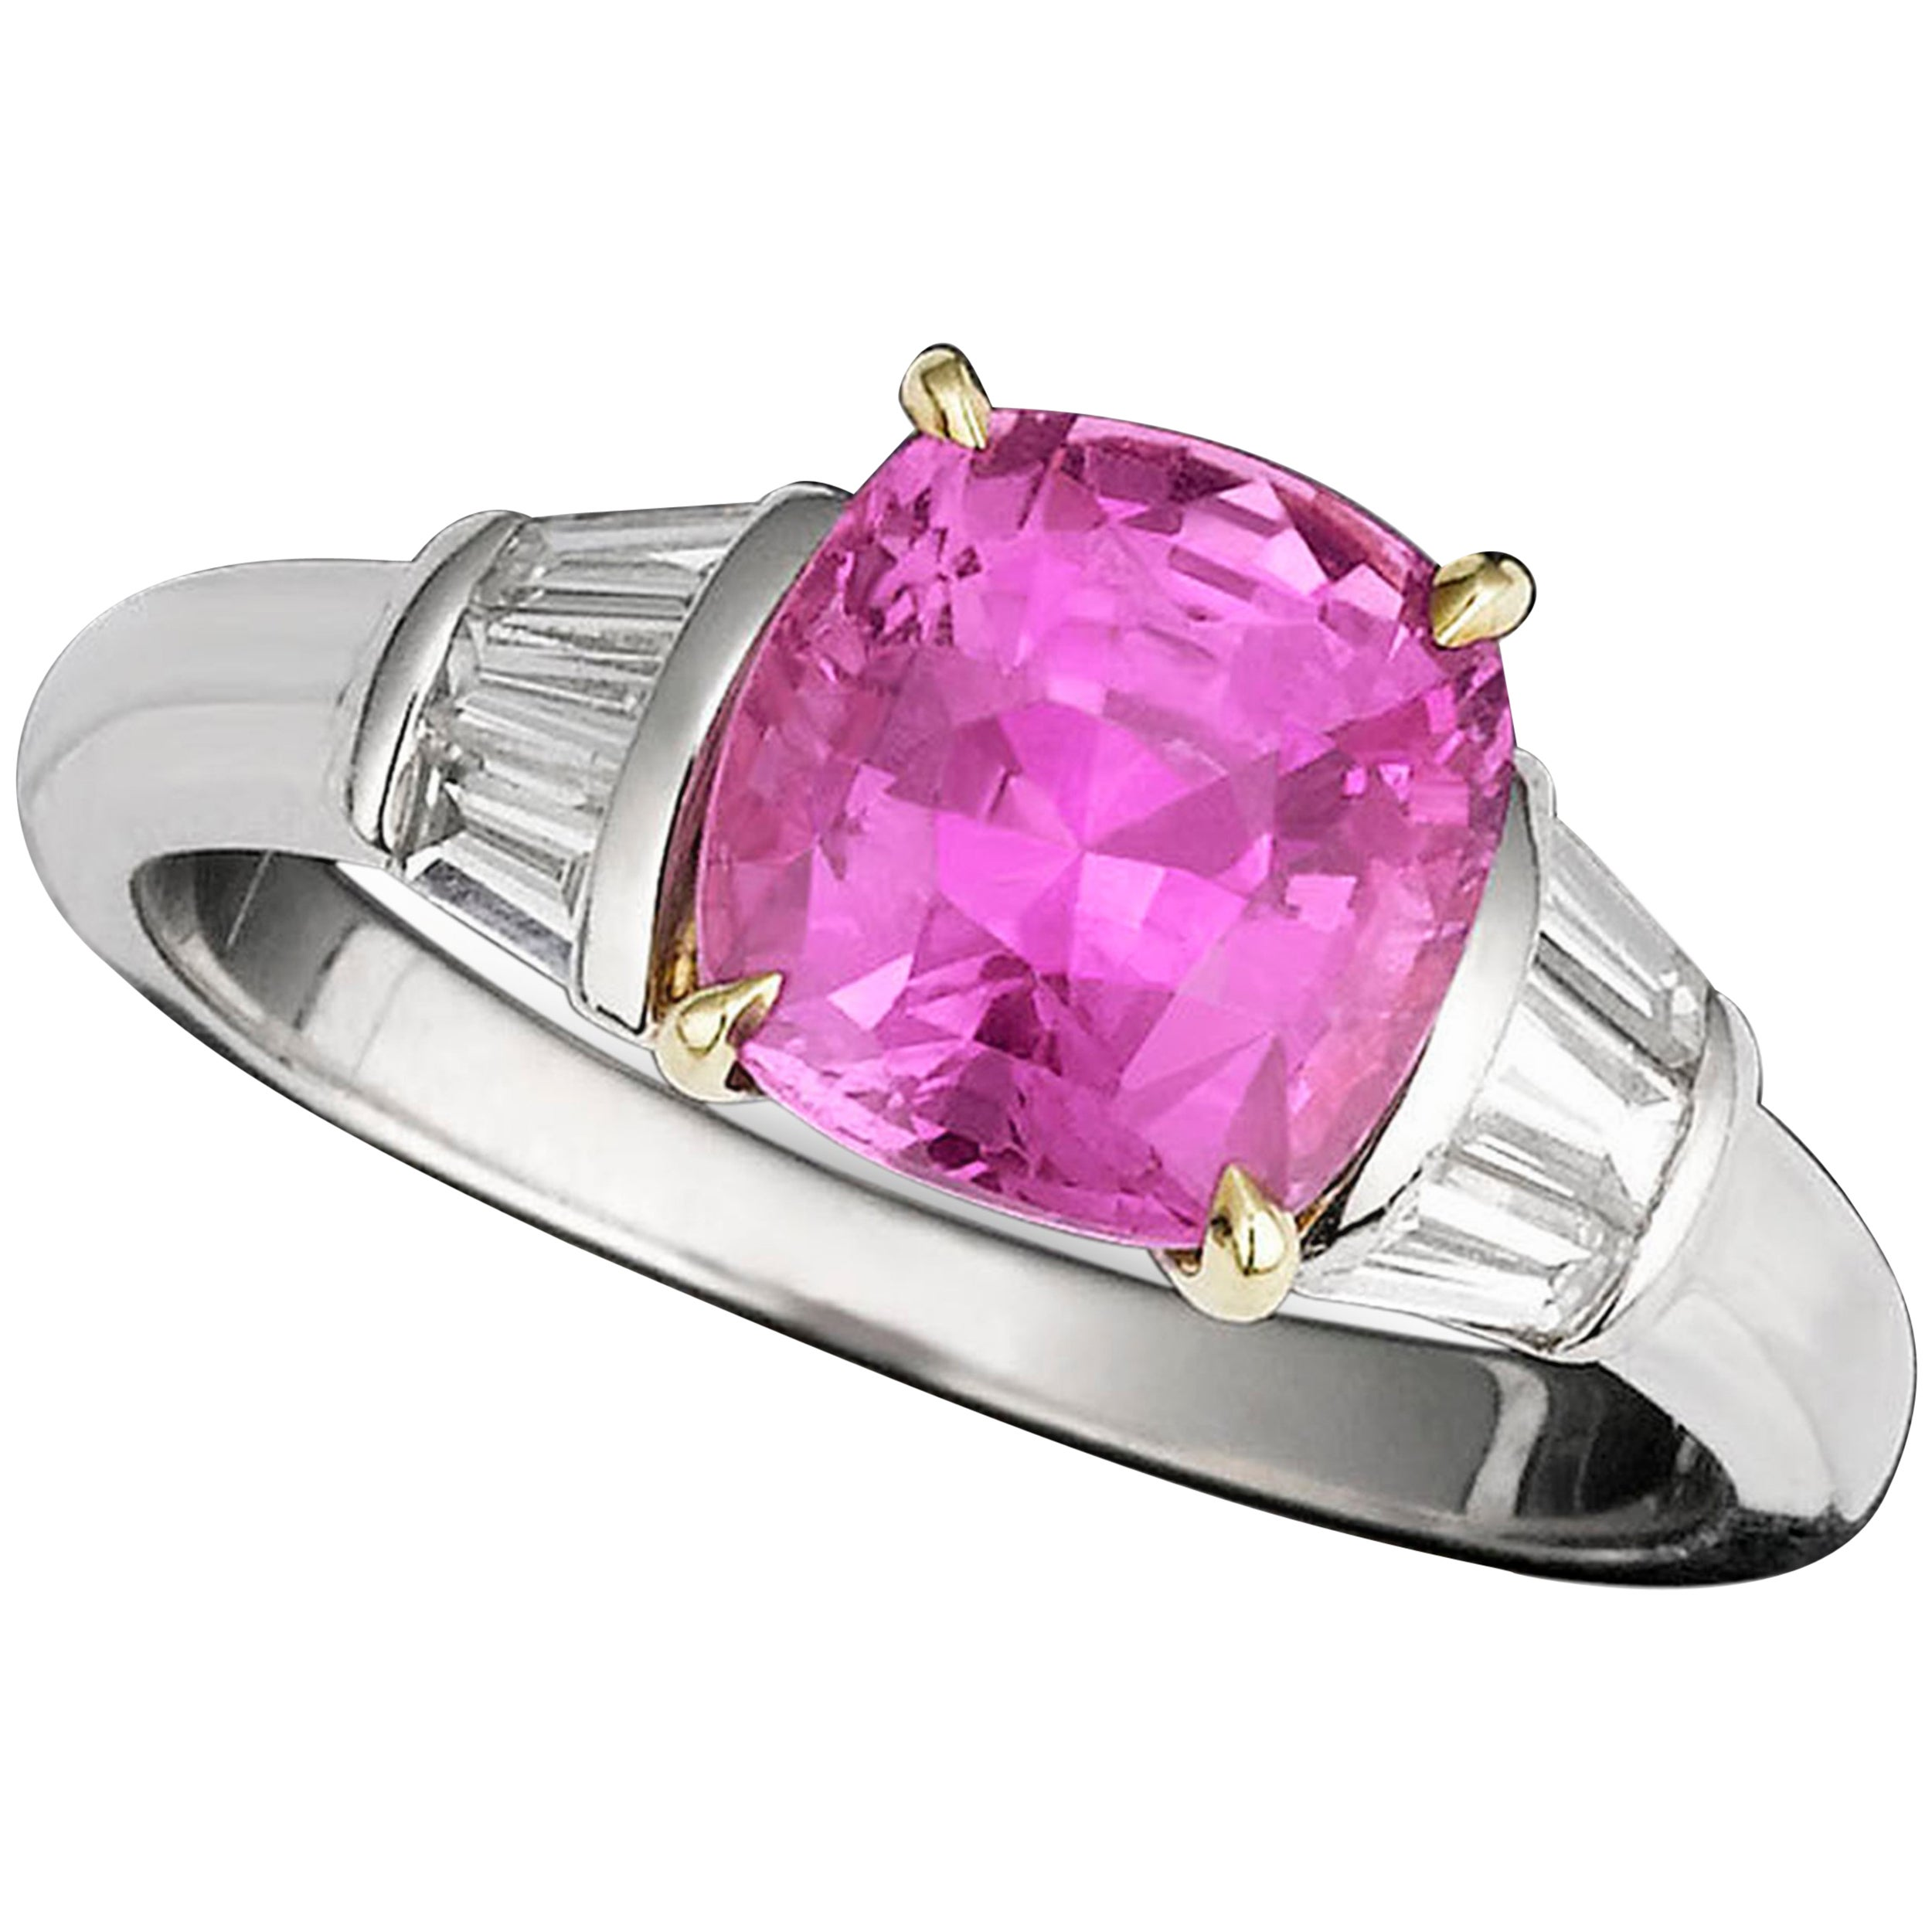 Untreated Blue and Pink Sapphire Diamond Gold Ring For Sale at 1stdibs